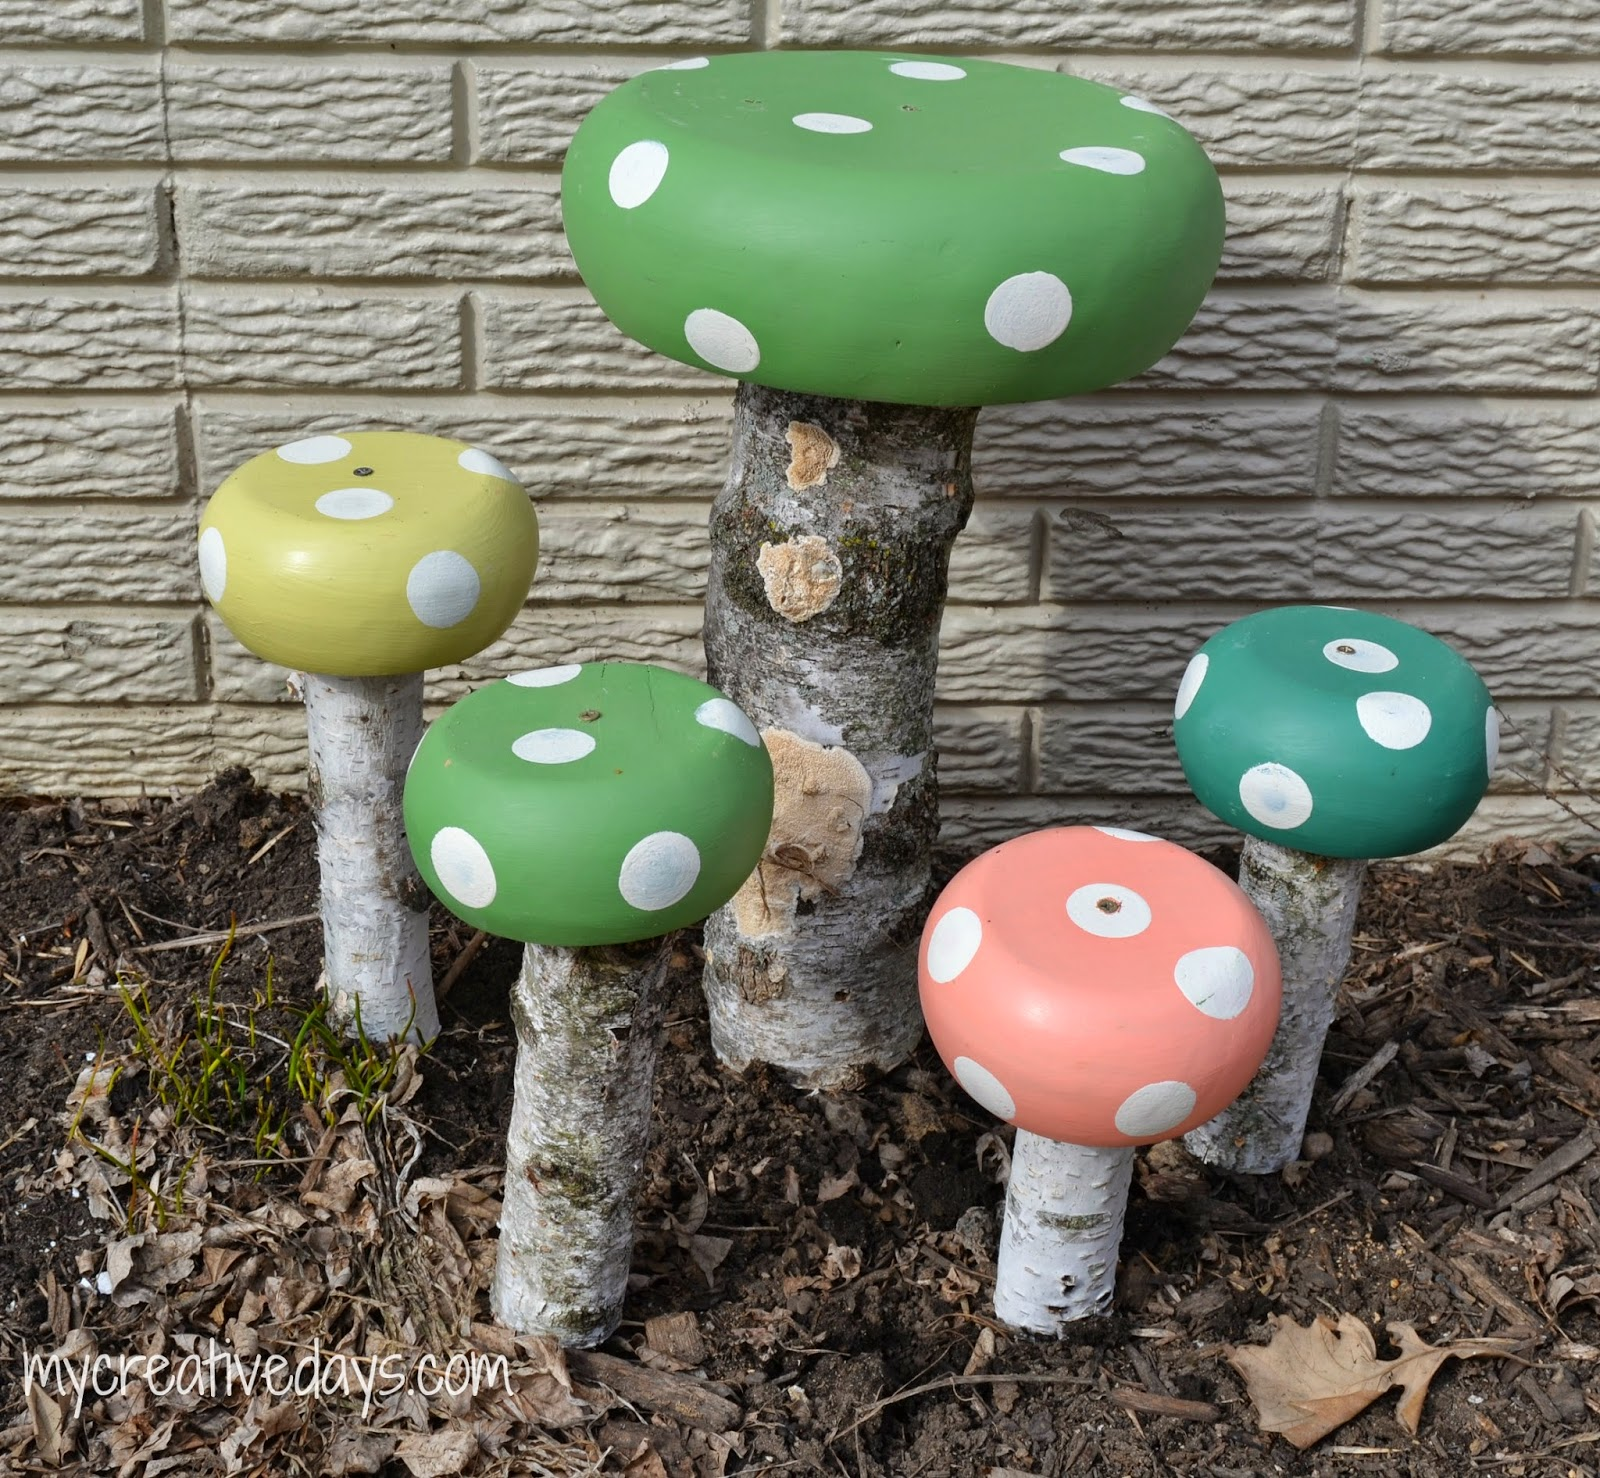 DIY mushroom toadstools in green, pink and turquoise.